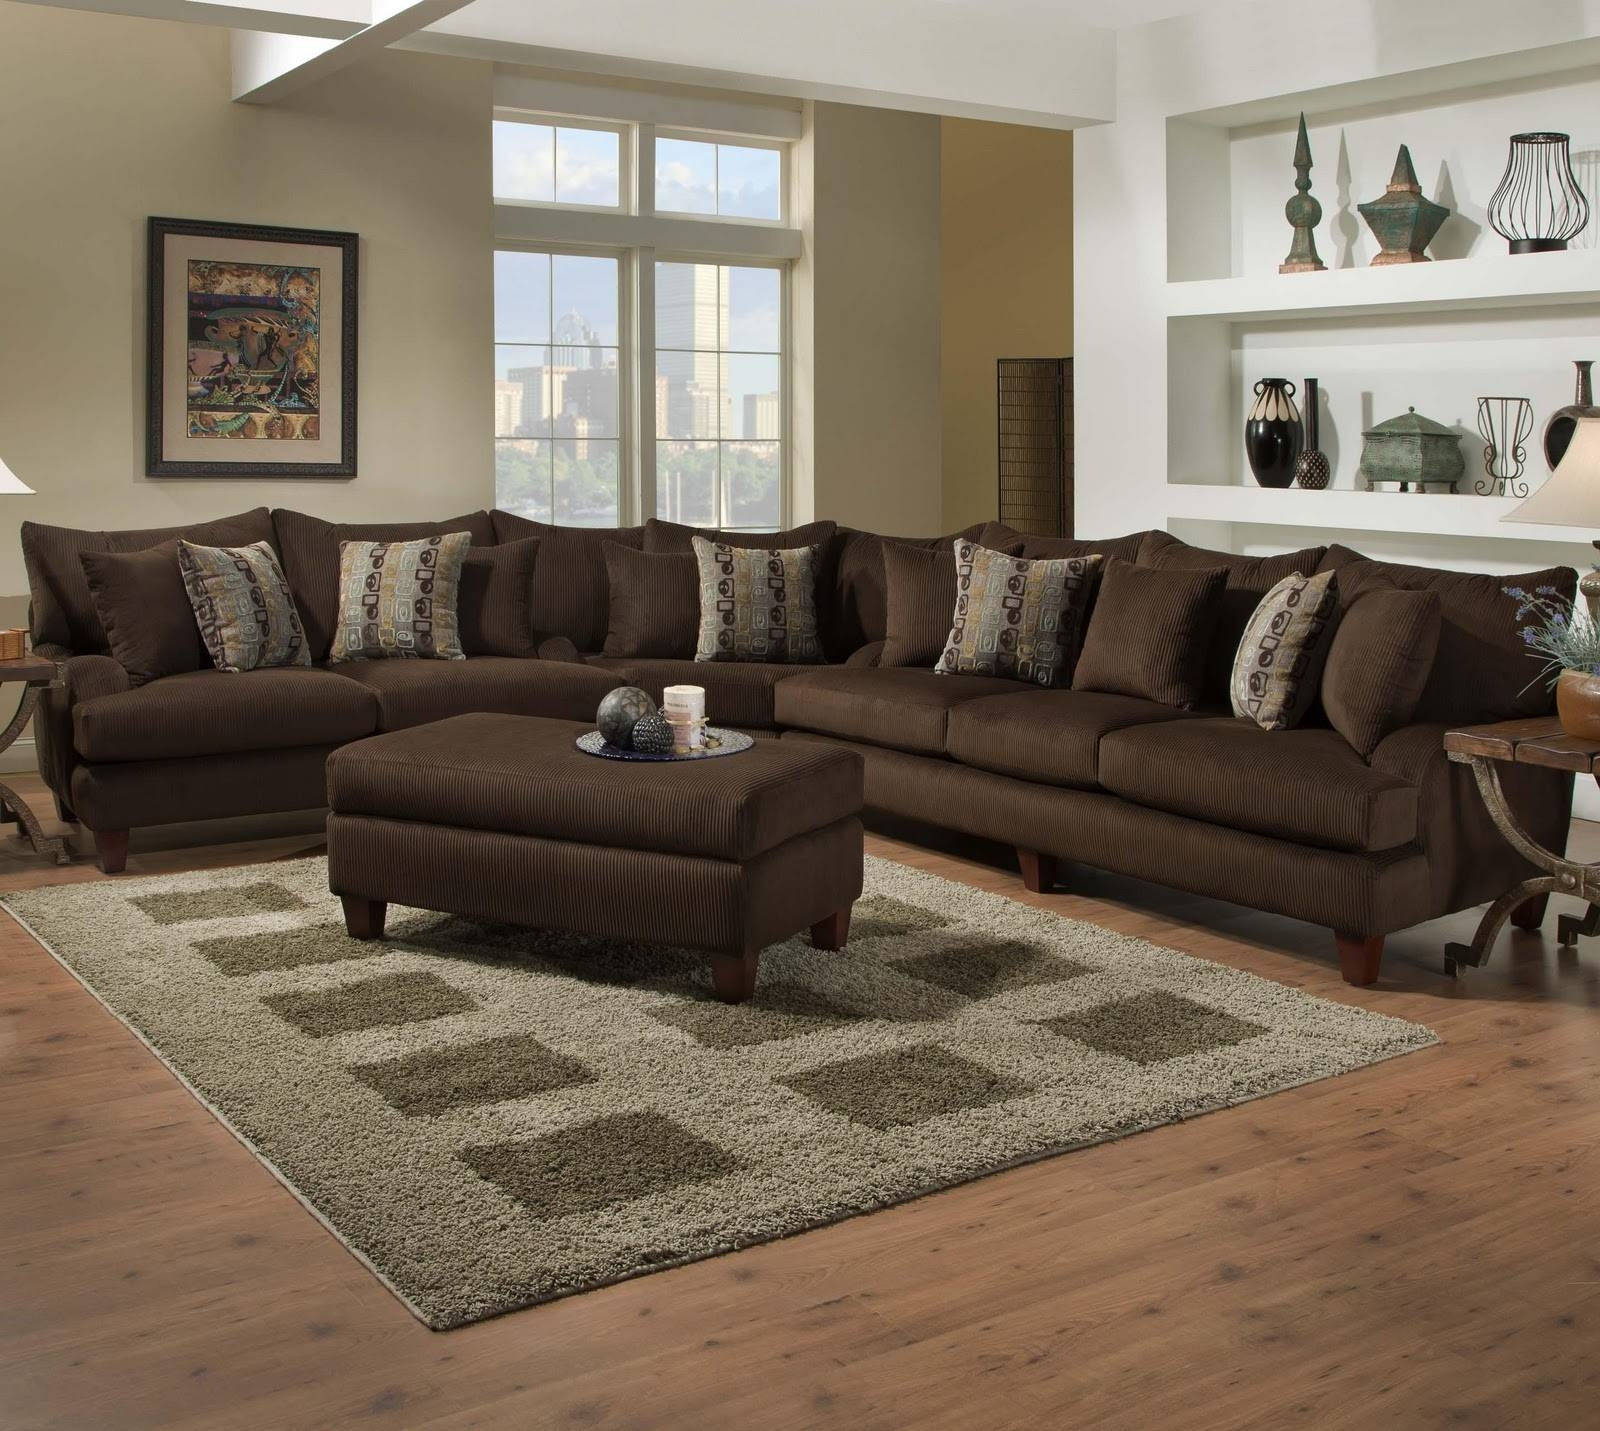 Featured Photo of 7 Seat Sectional Sofa